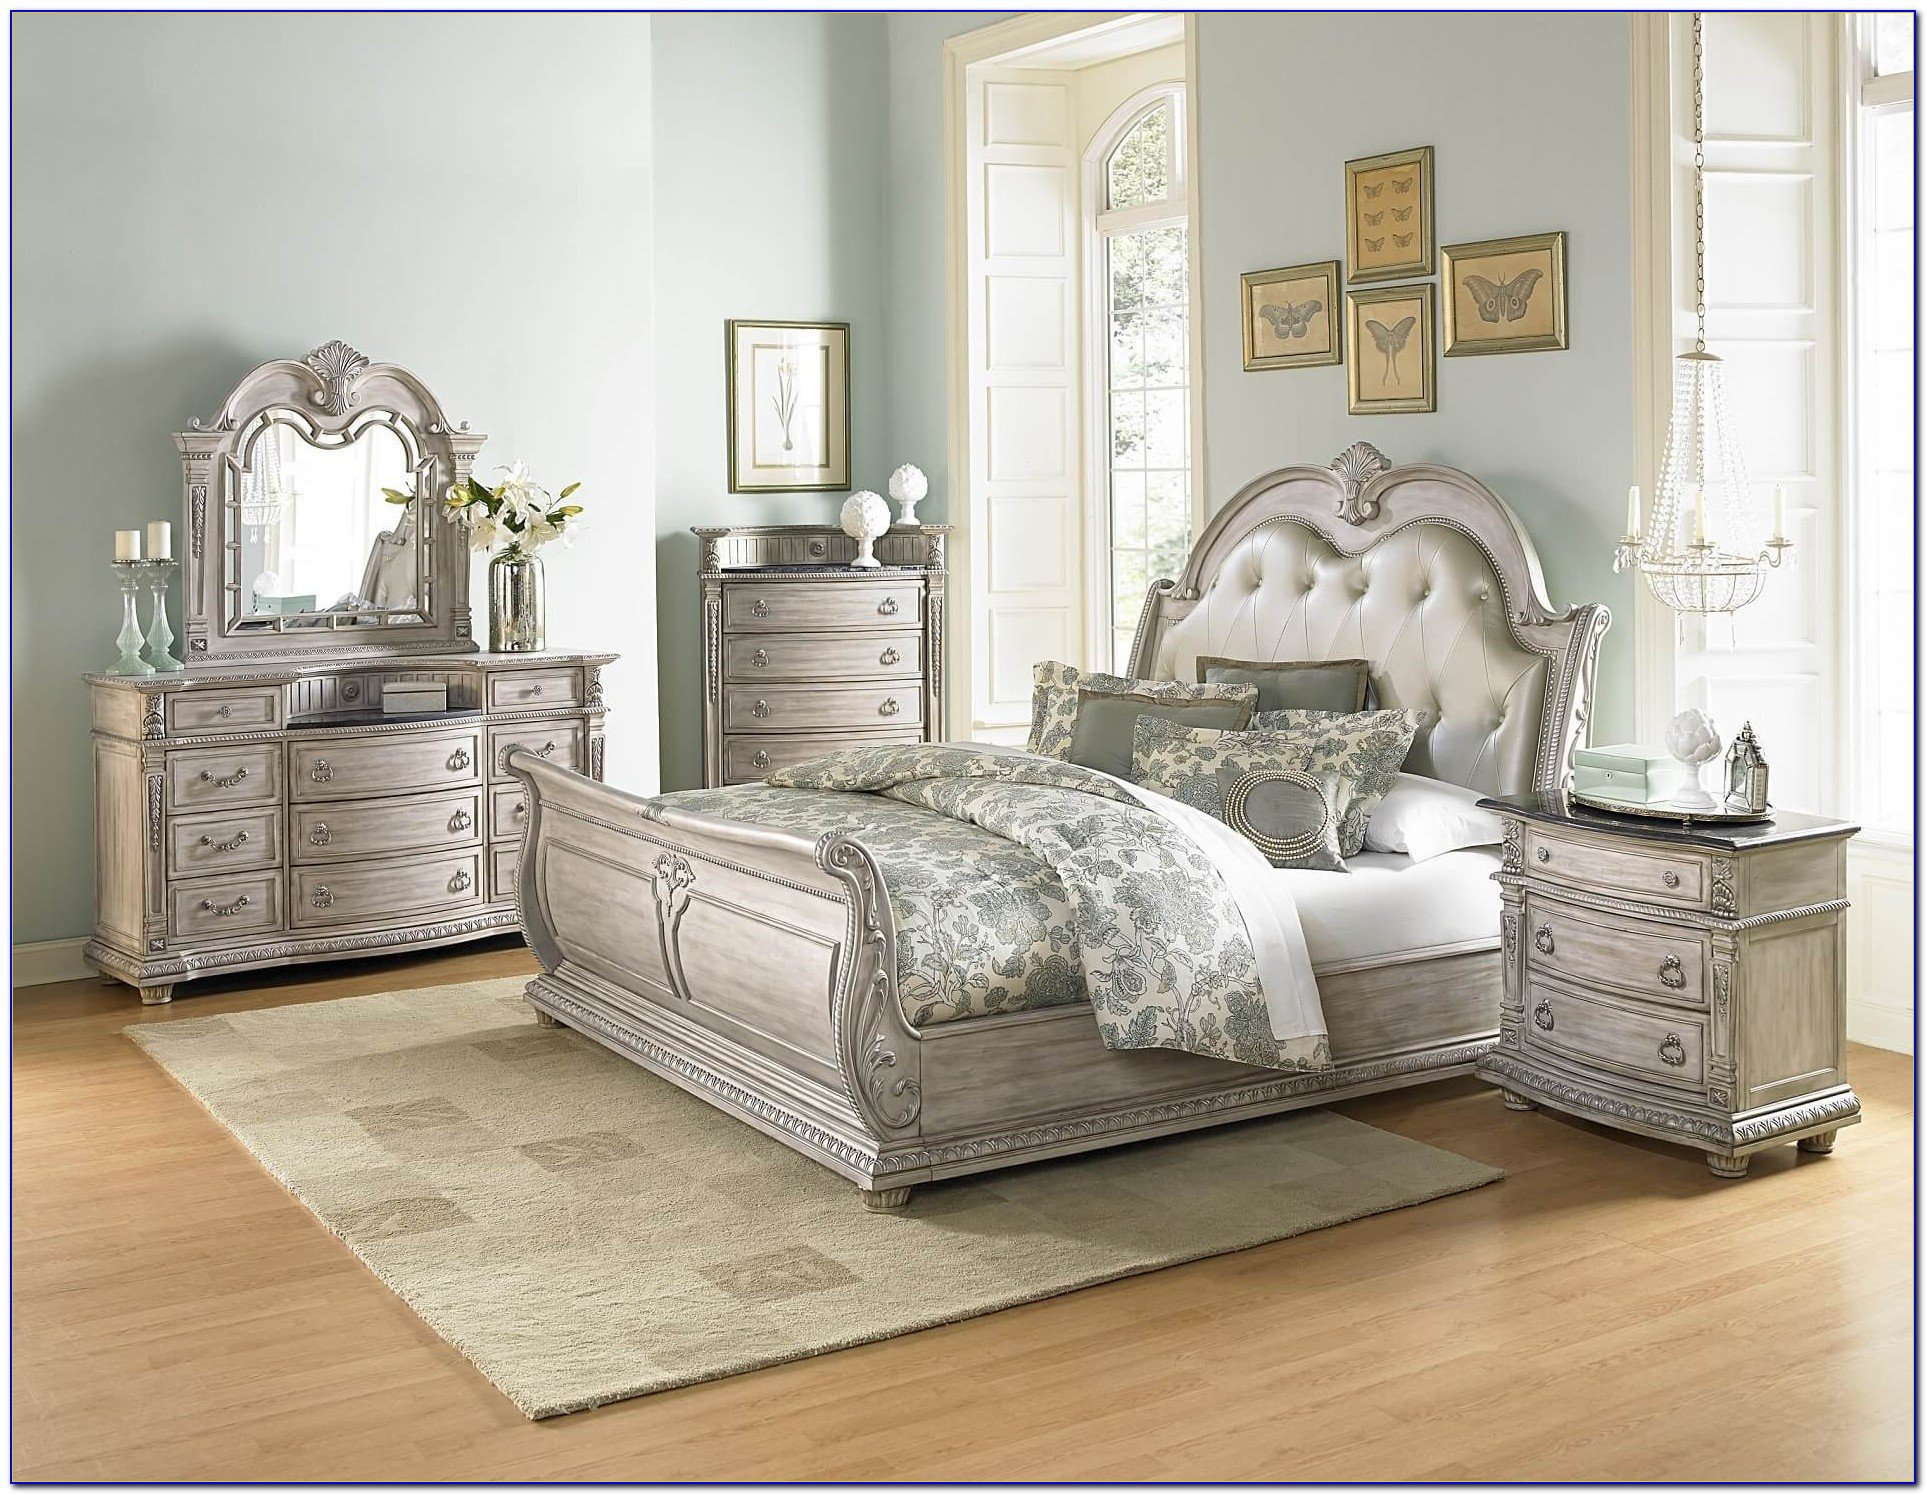 White Wicker Bedroom Furniture Lovely White Washed Bedroom Furniture Nz Home Design Ideas